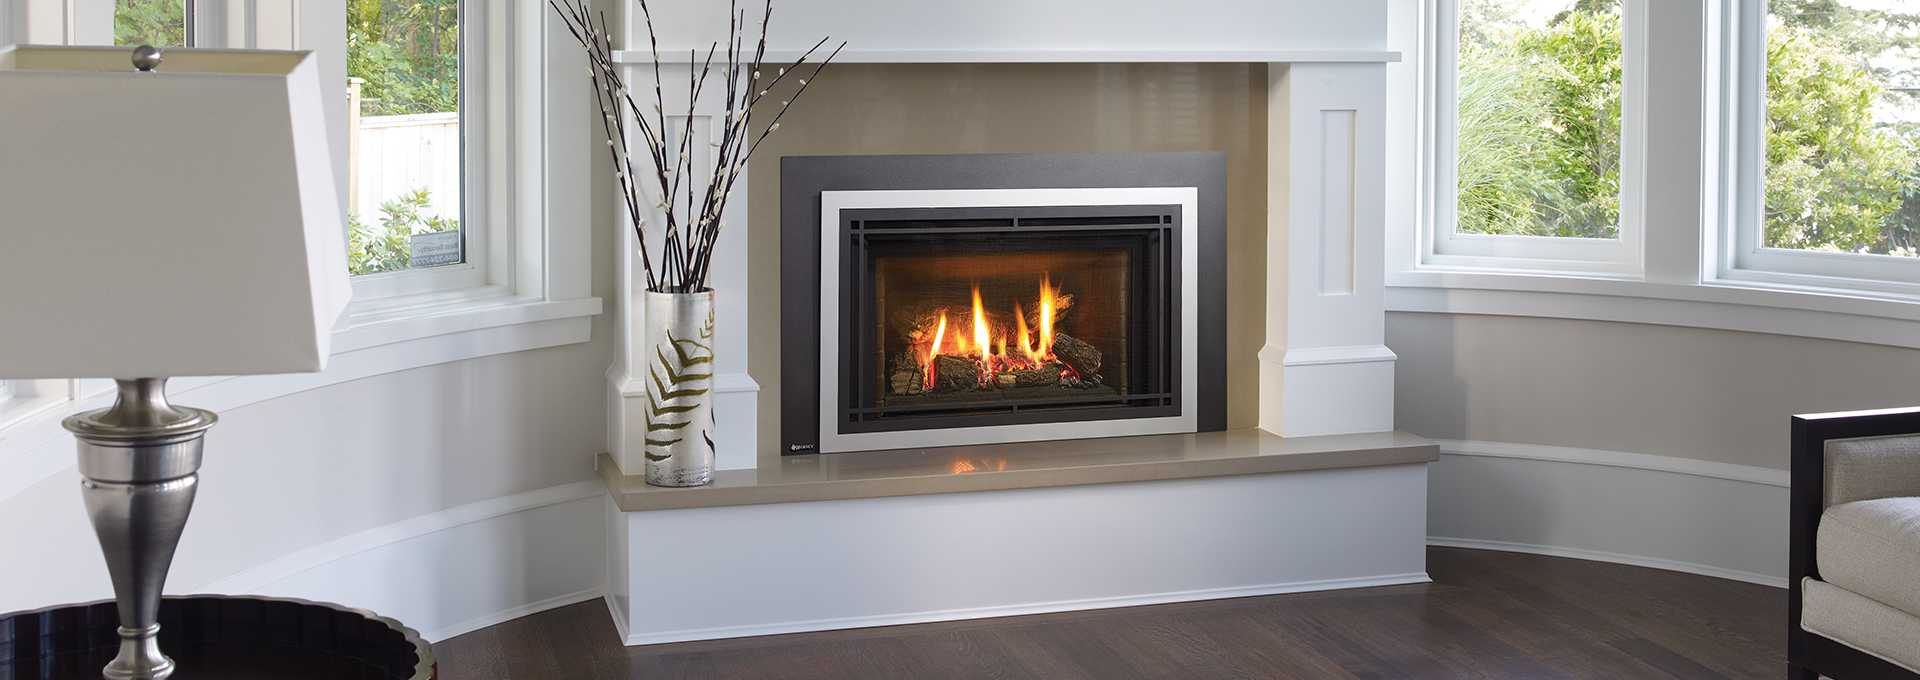 lri4e medium gas insert gas fireplace inserts regency